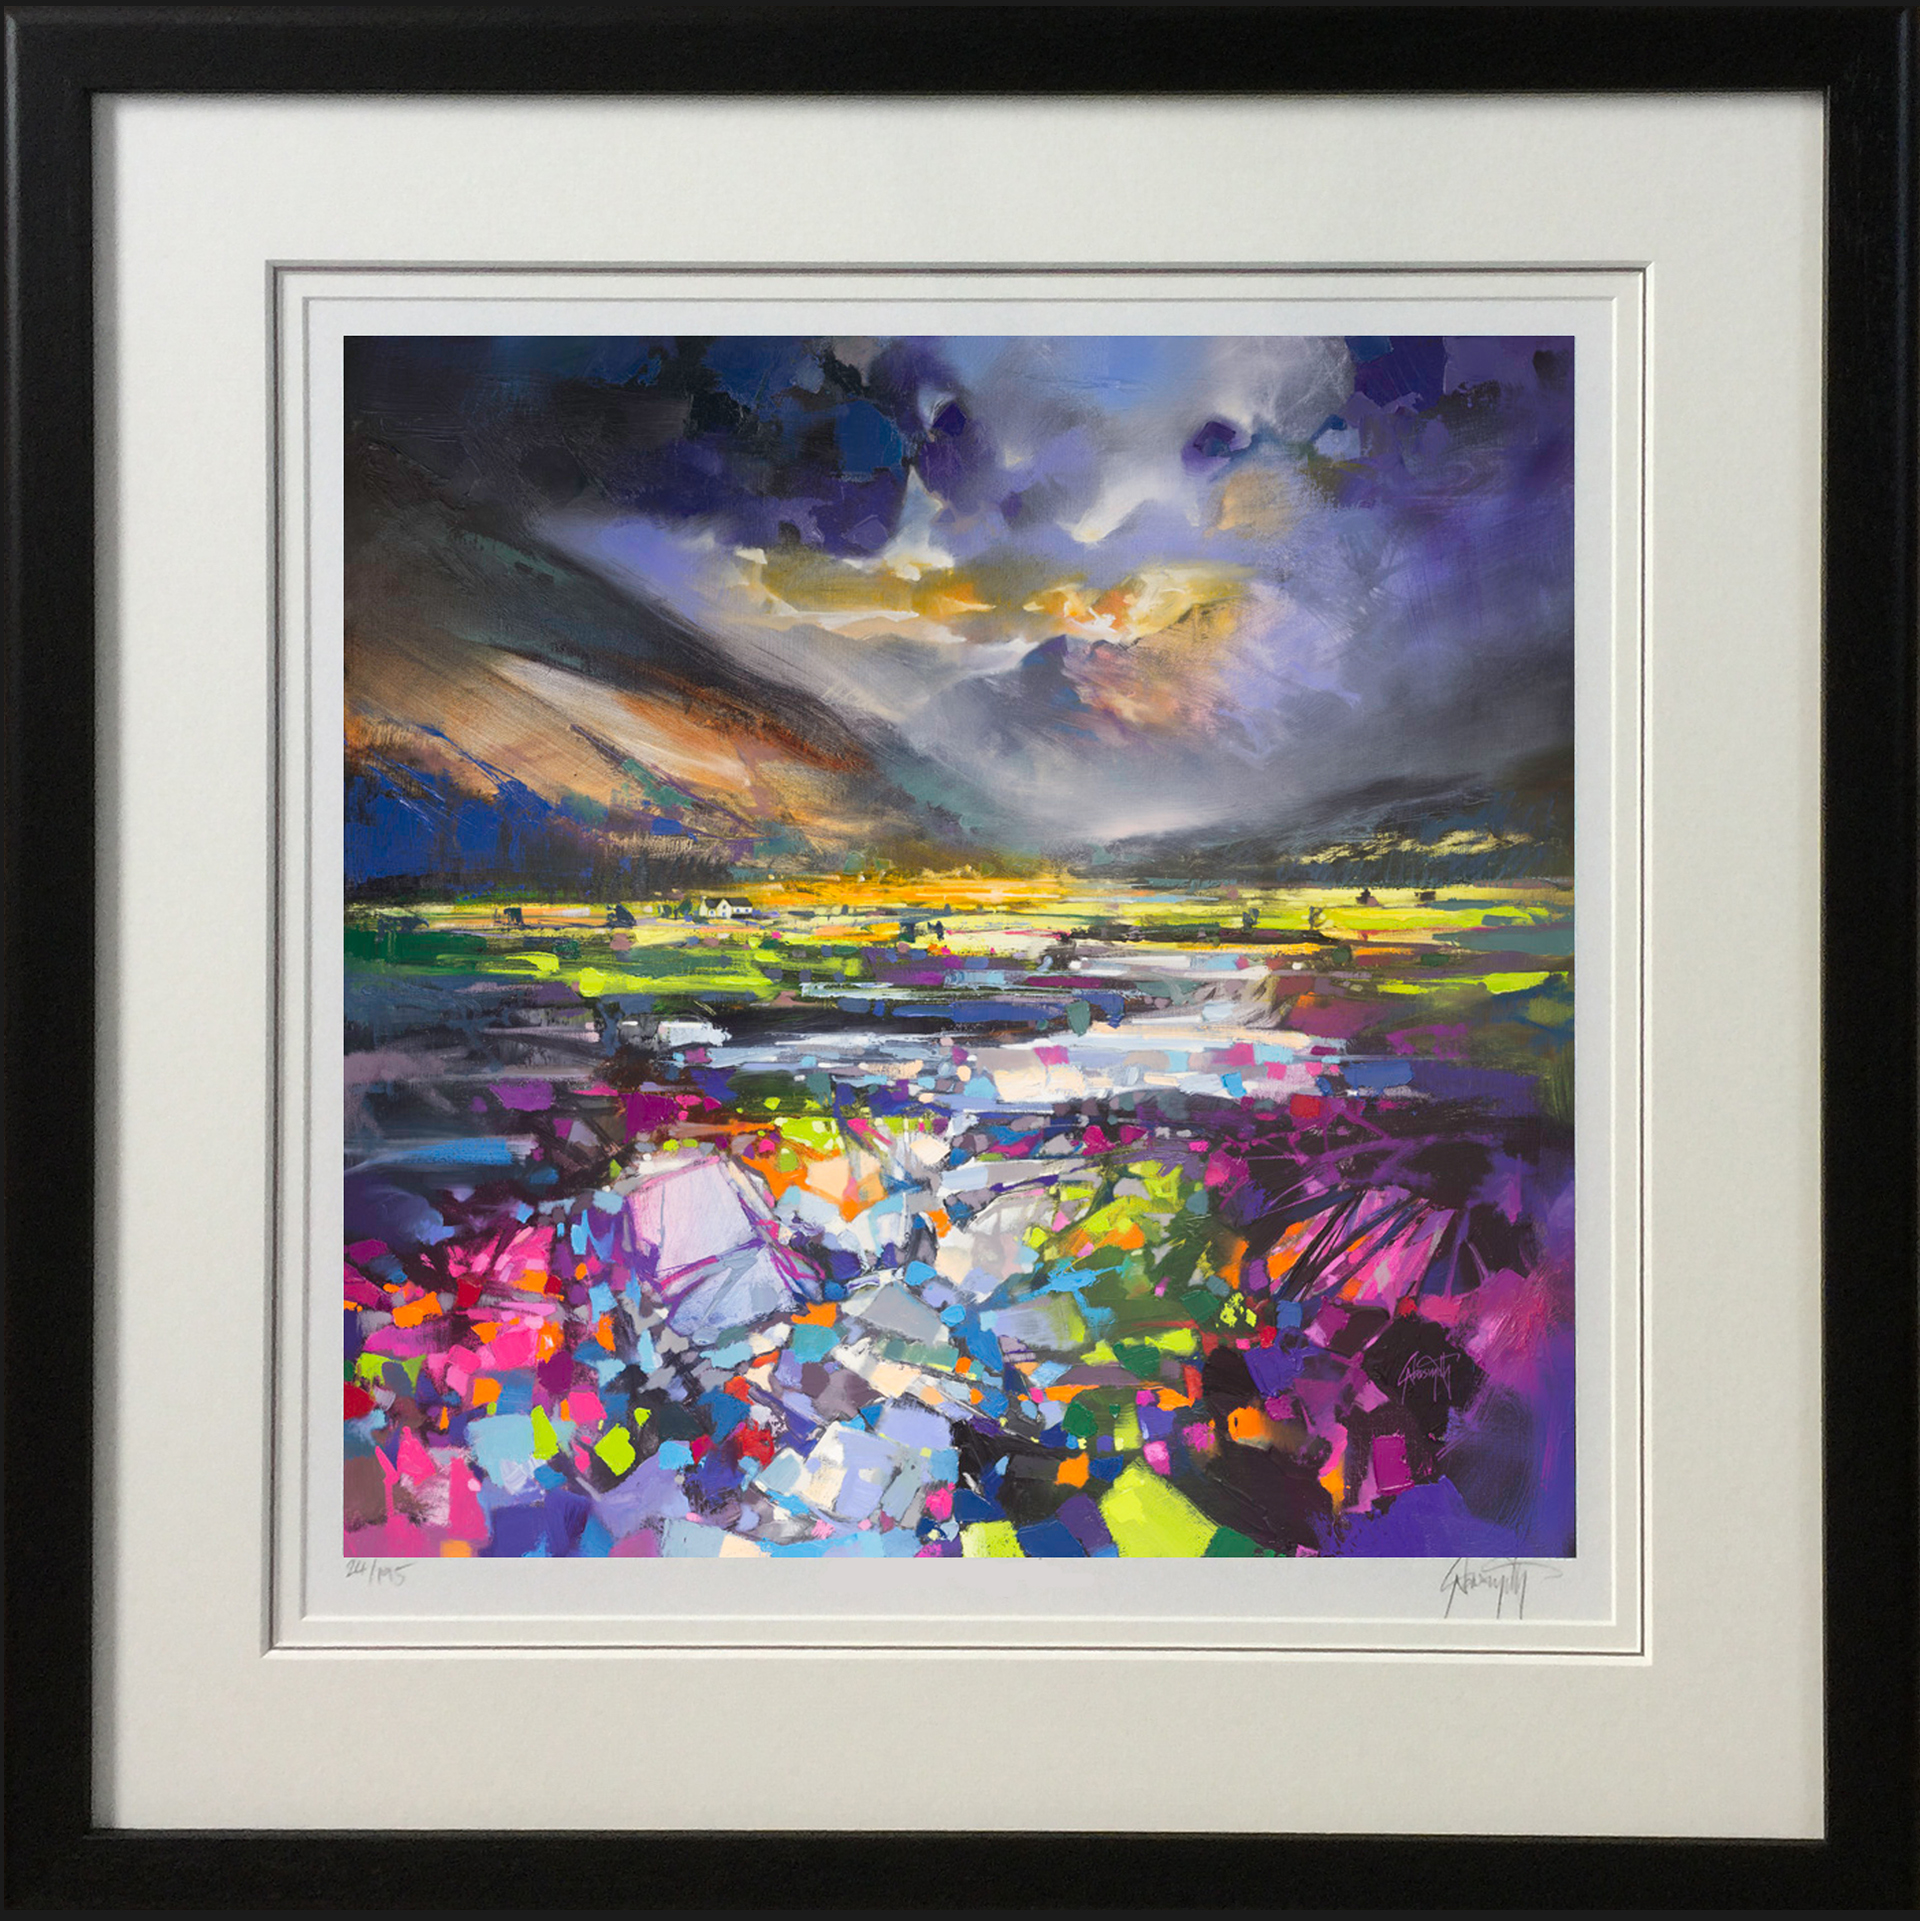 Green Glen by Scott Naismith - framed in black